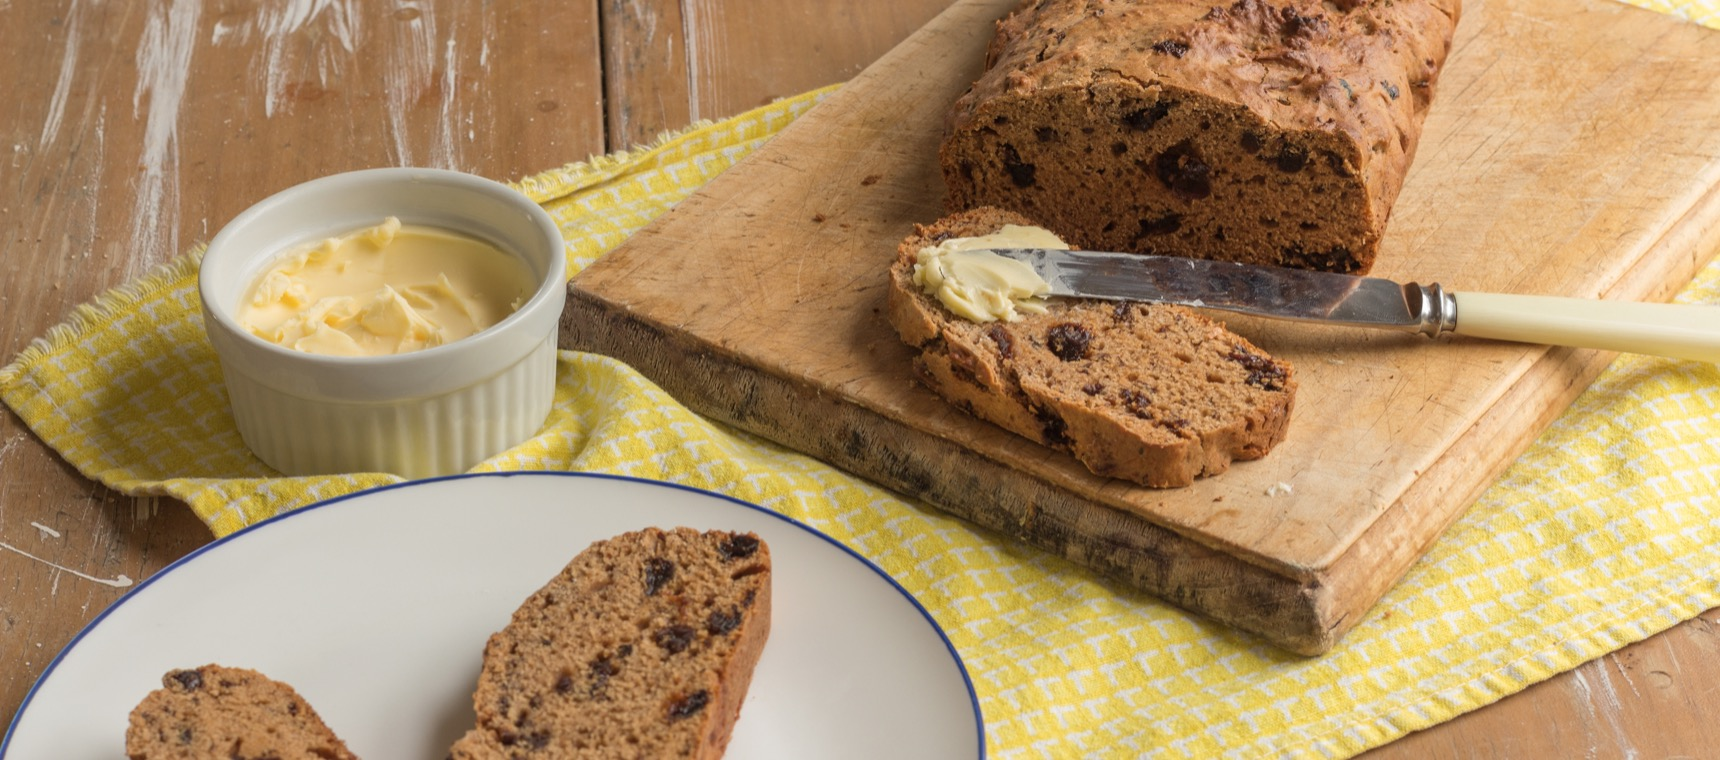 No-Egg Raisin Loaf